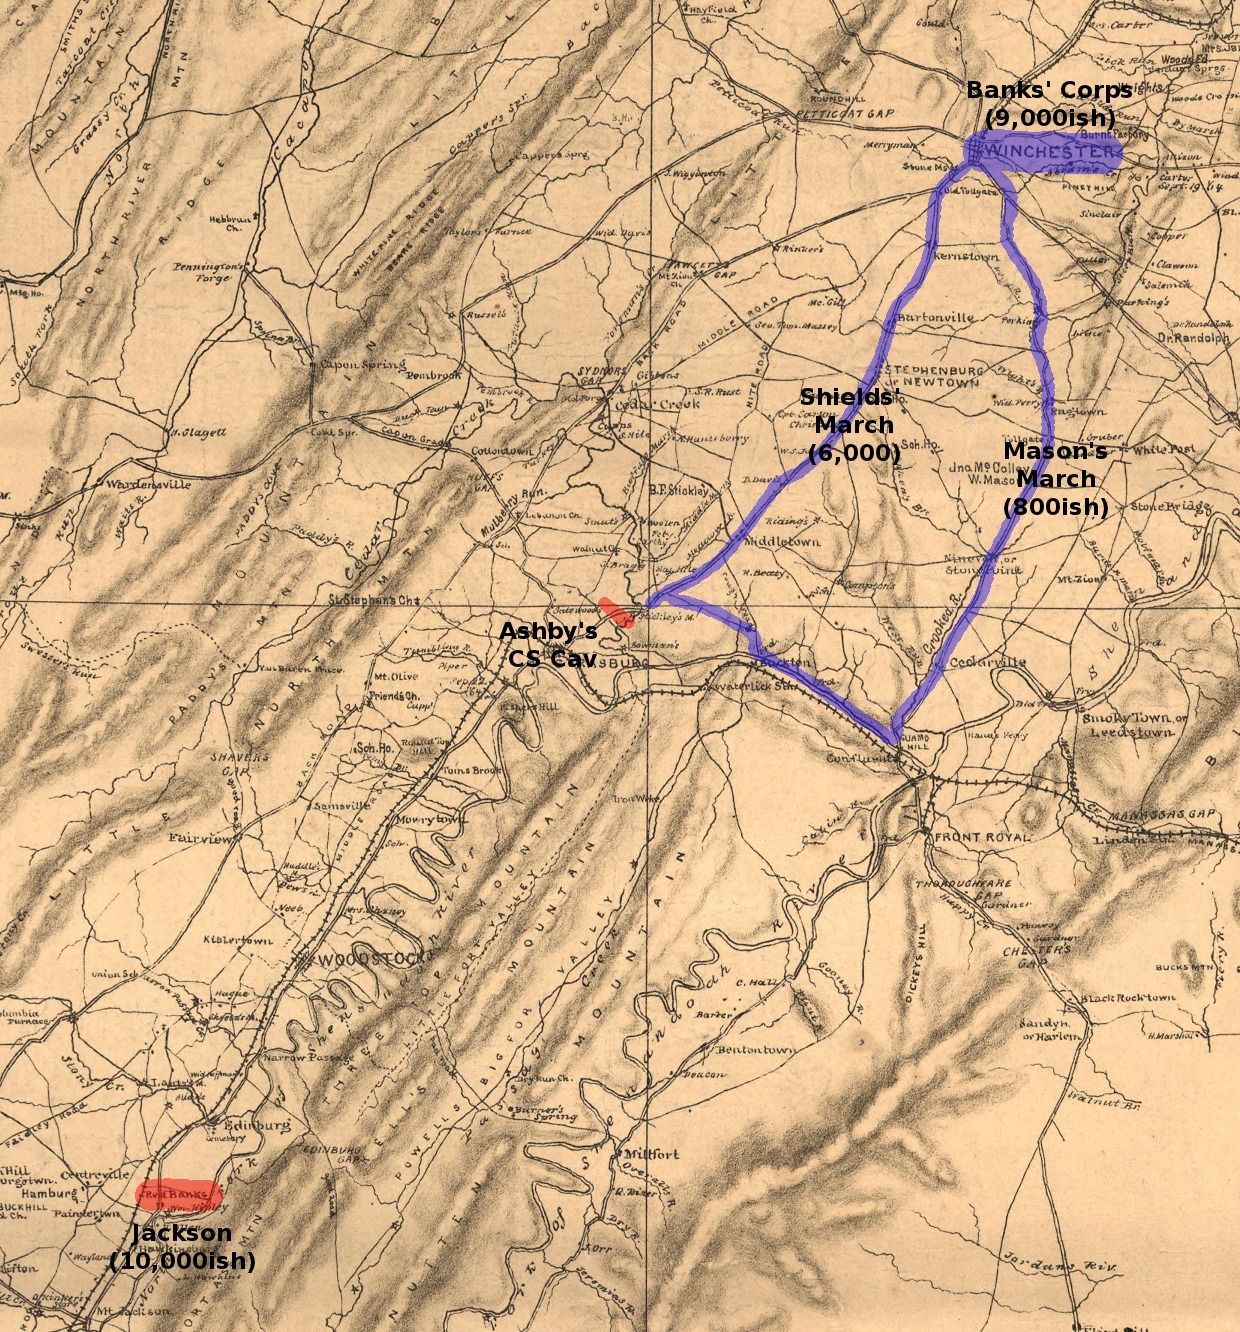 gen ulysses s grant now restored to his command over the army of the tennessee orders all of his divisions to concentrate at pittsburg landing on the